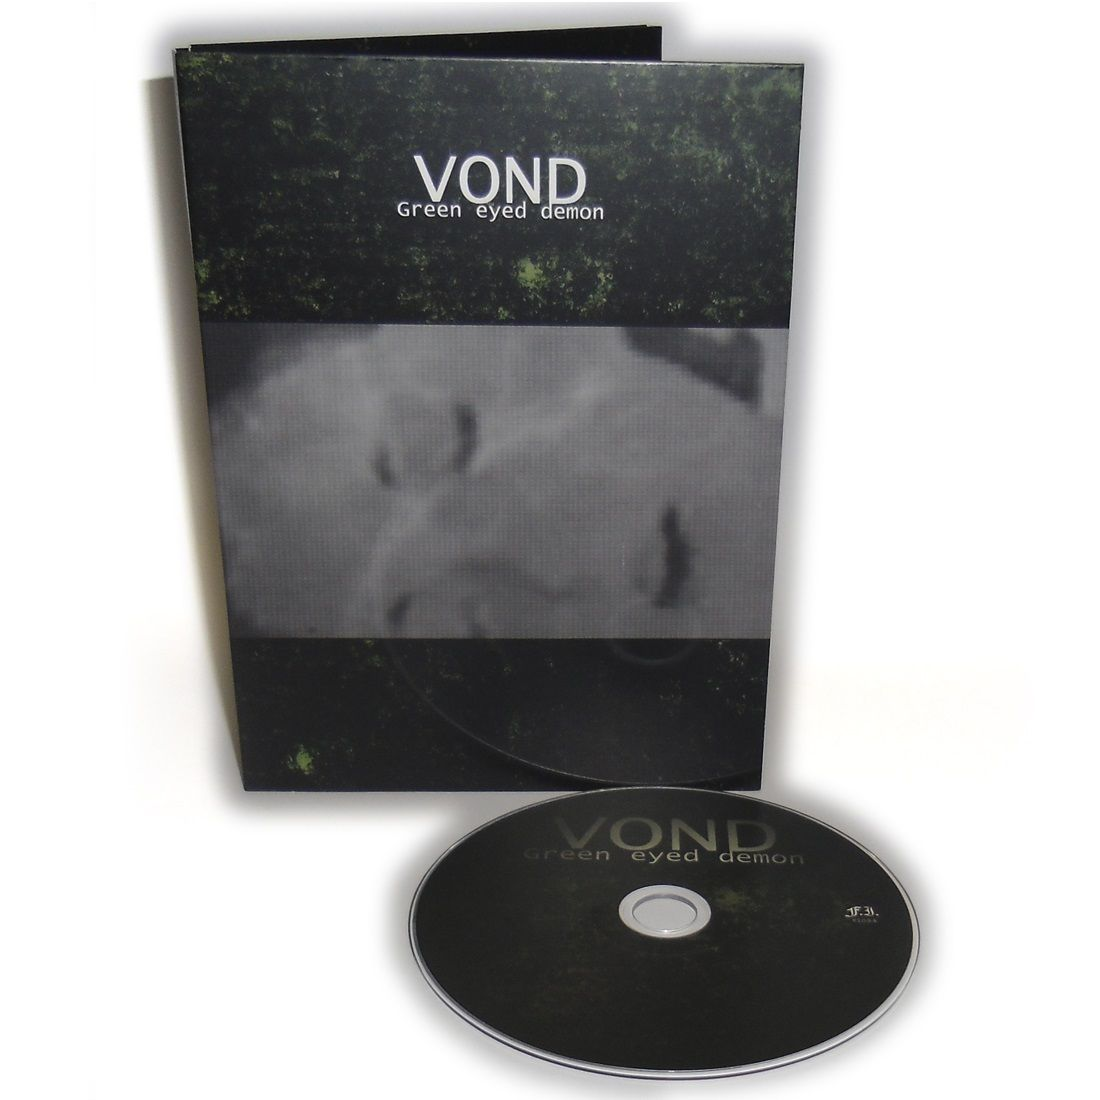 Vond - Green Eyed Demon (A5 Digipack)